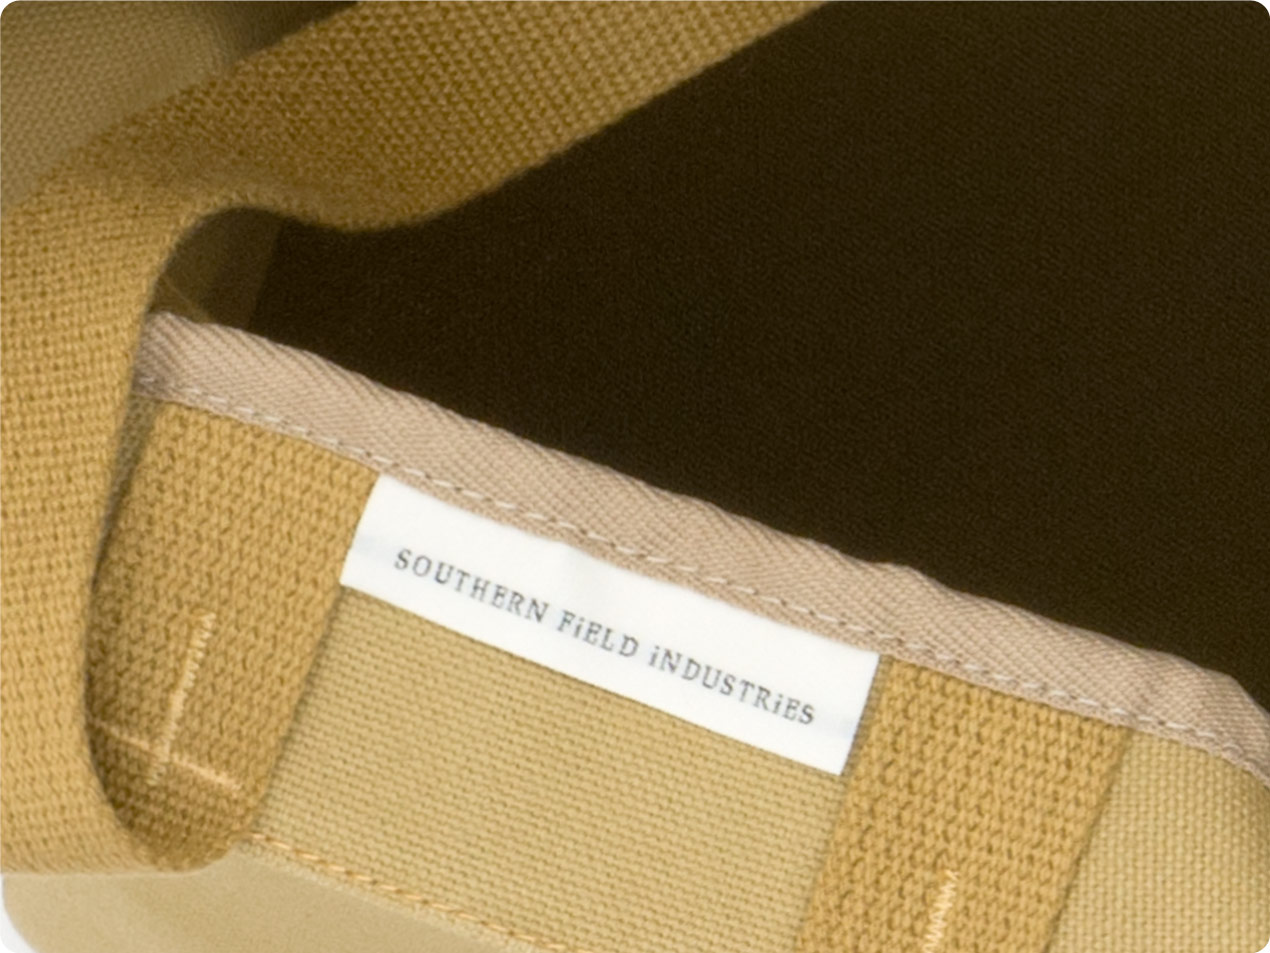 SOUTHERN FiELD INDUSTRiES Day Bag